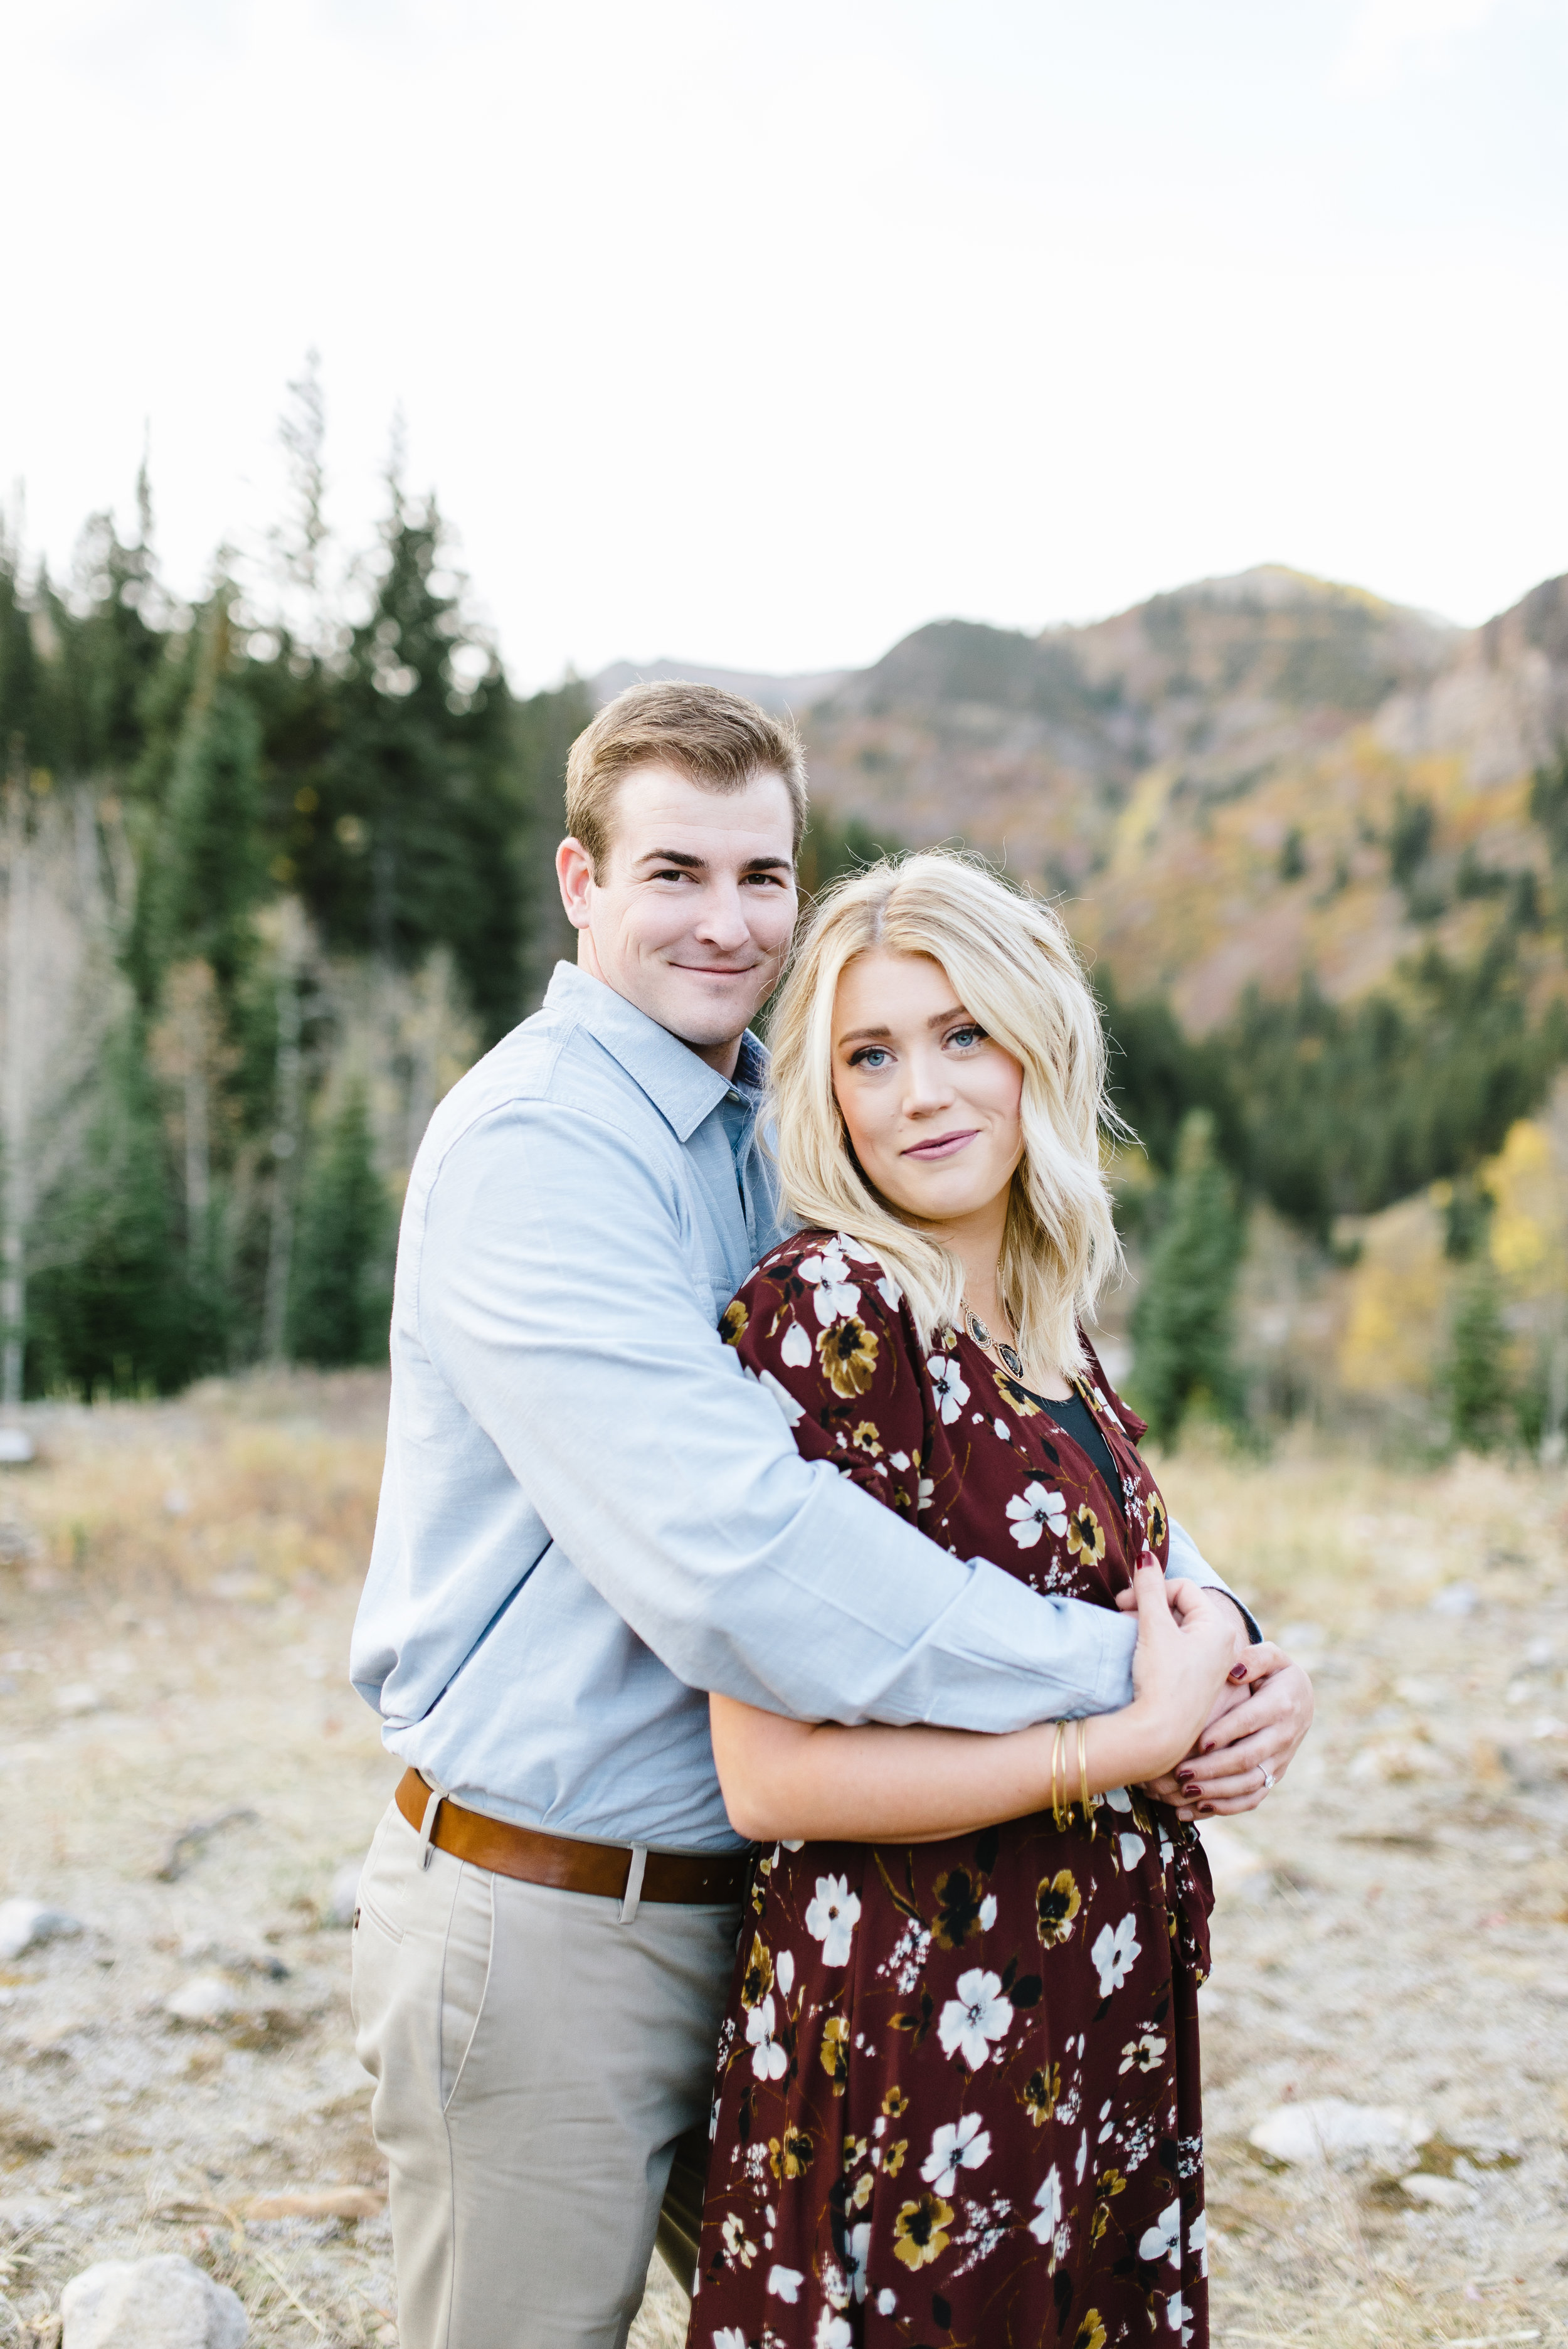 Taylor+Joe Engagements-56.jpg